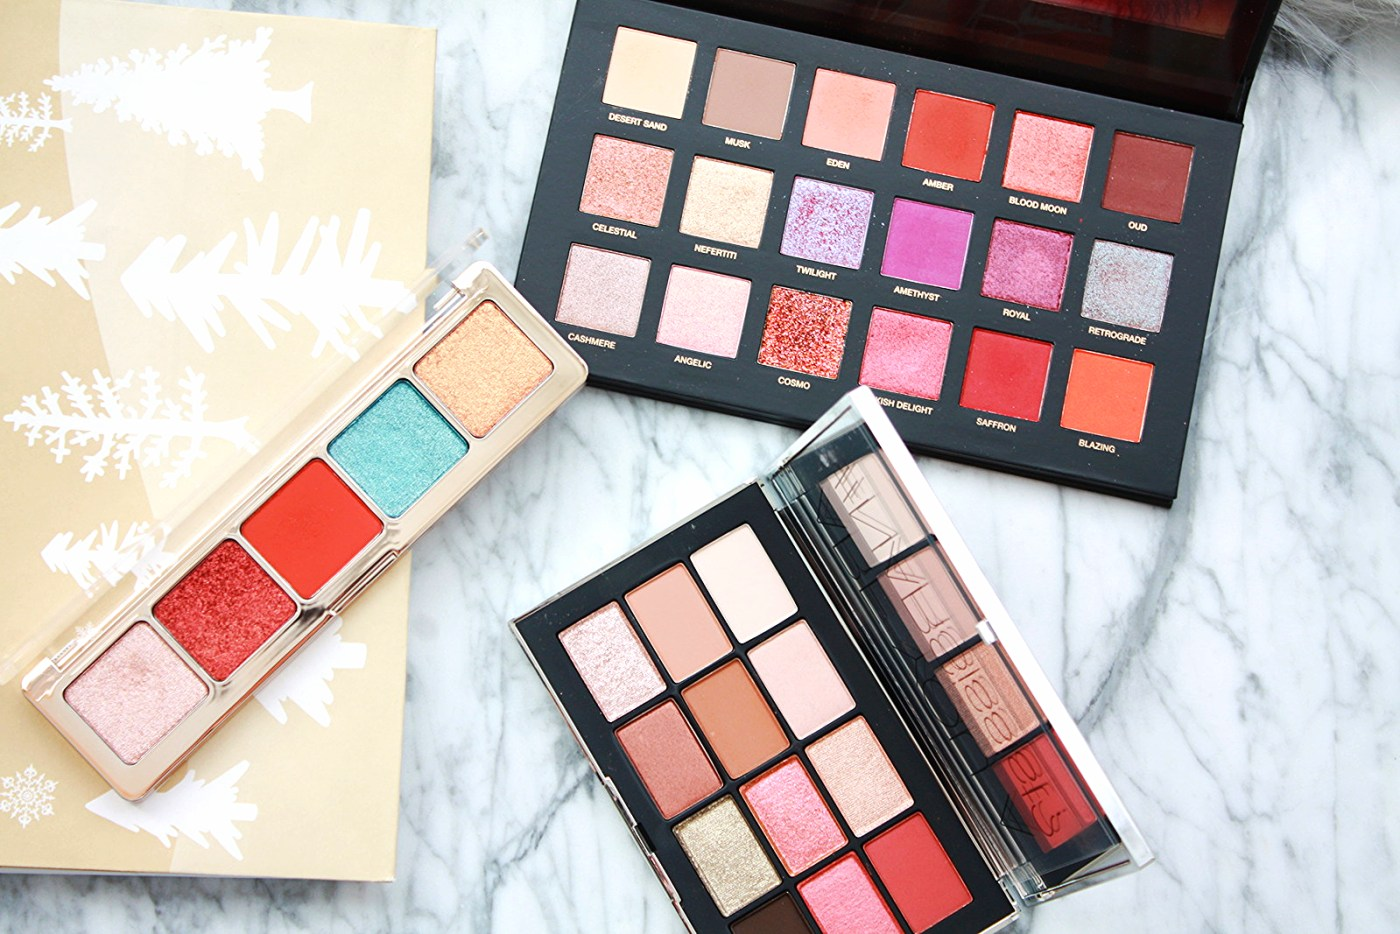 THE THREE EYESHADOW PALETTES I'M LOVING